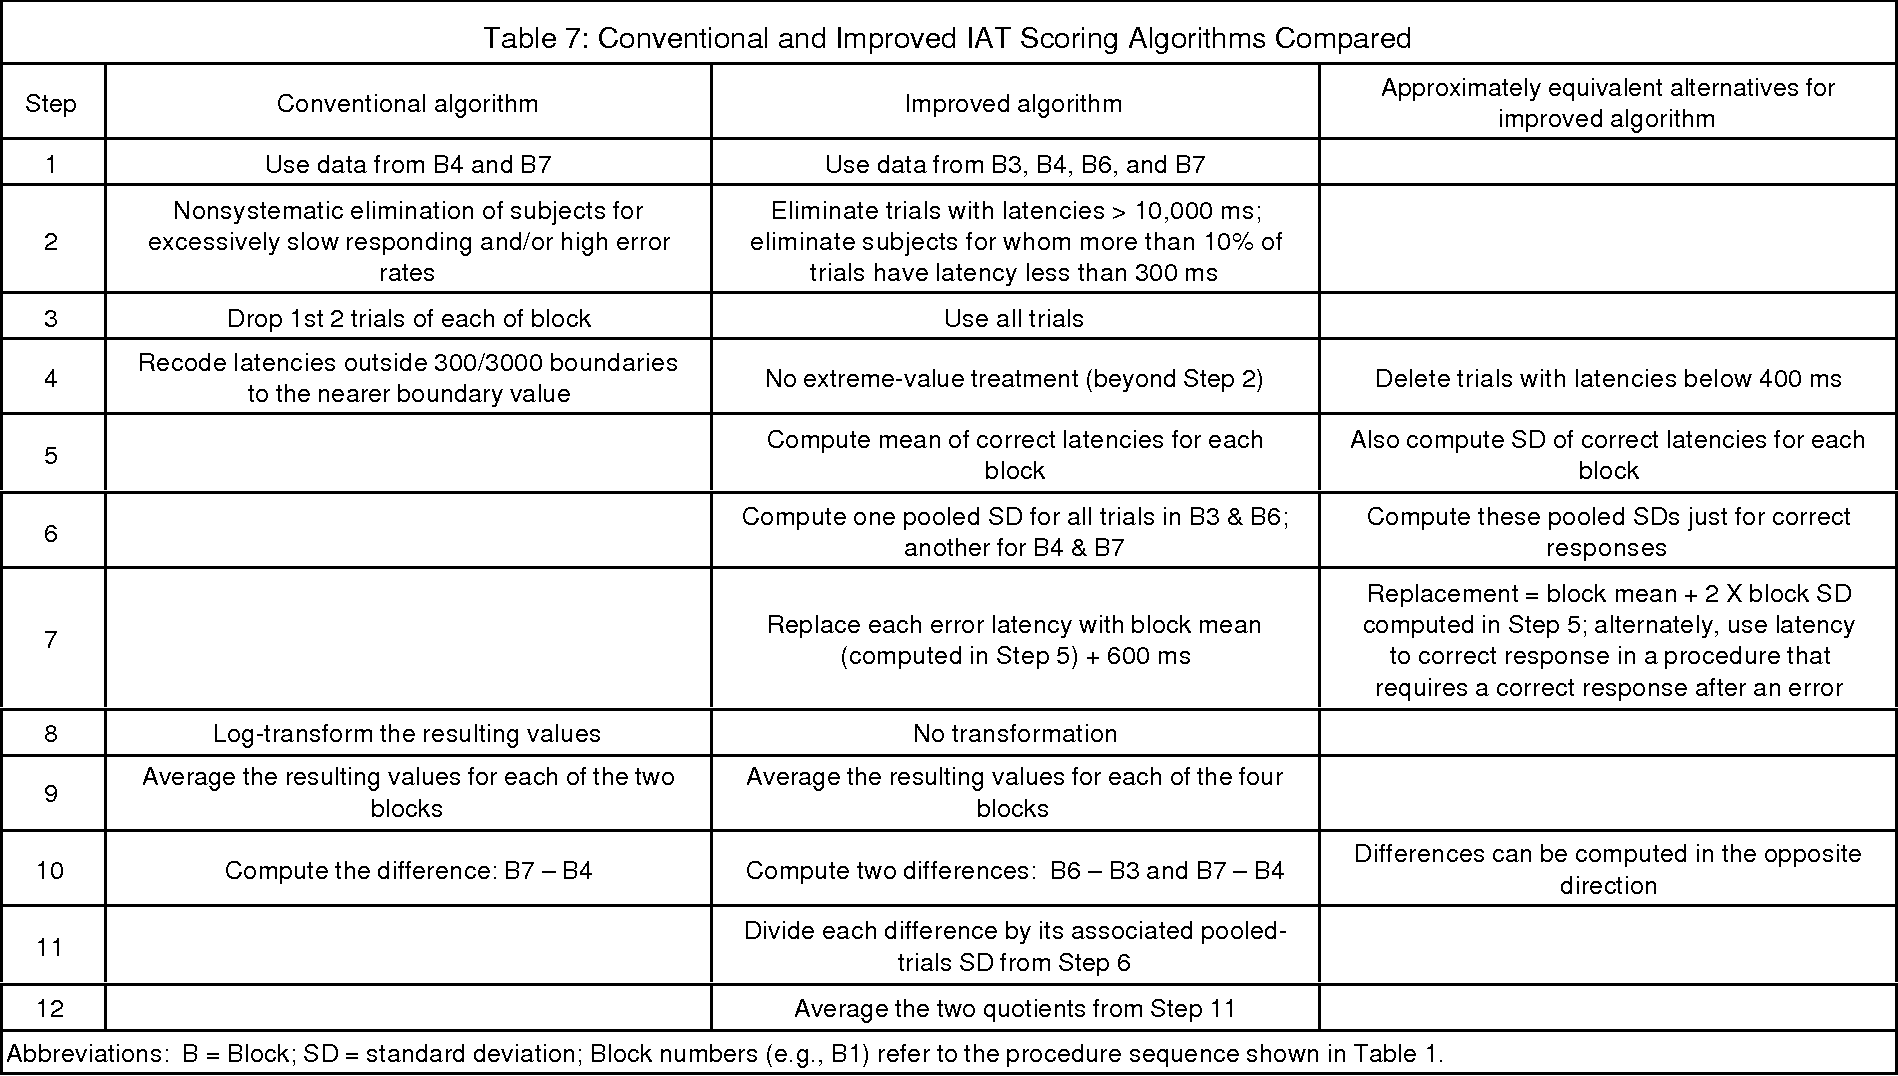 Table 7 from Running Head : IMPROVED SCORING OF THE IAT